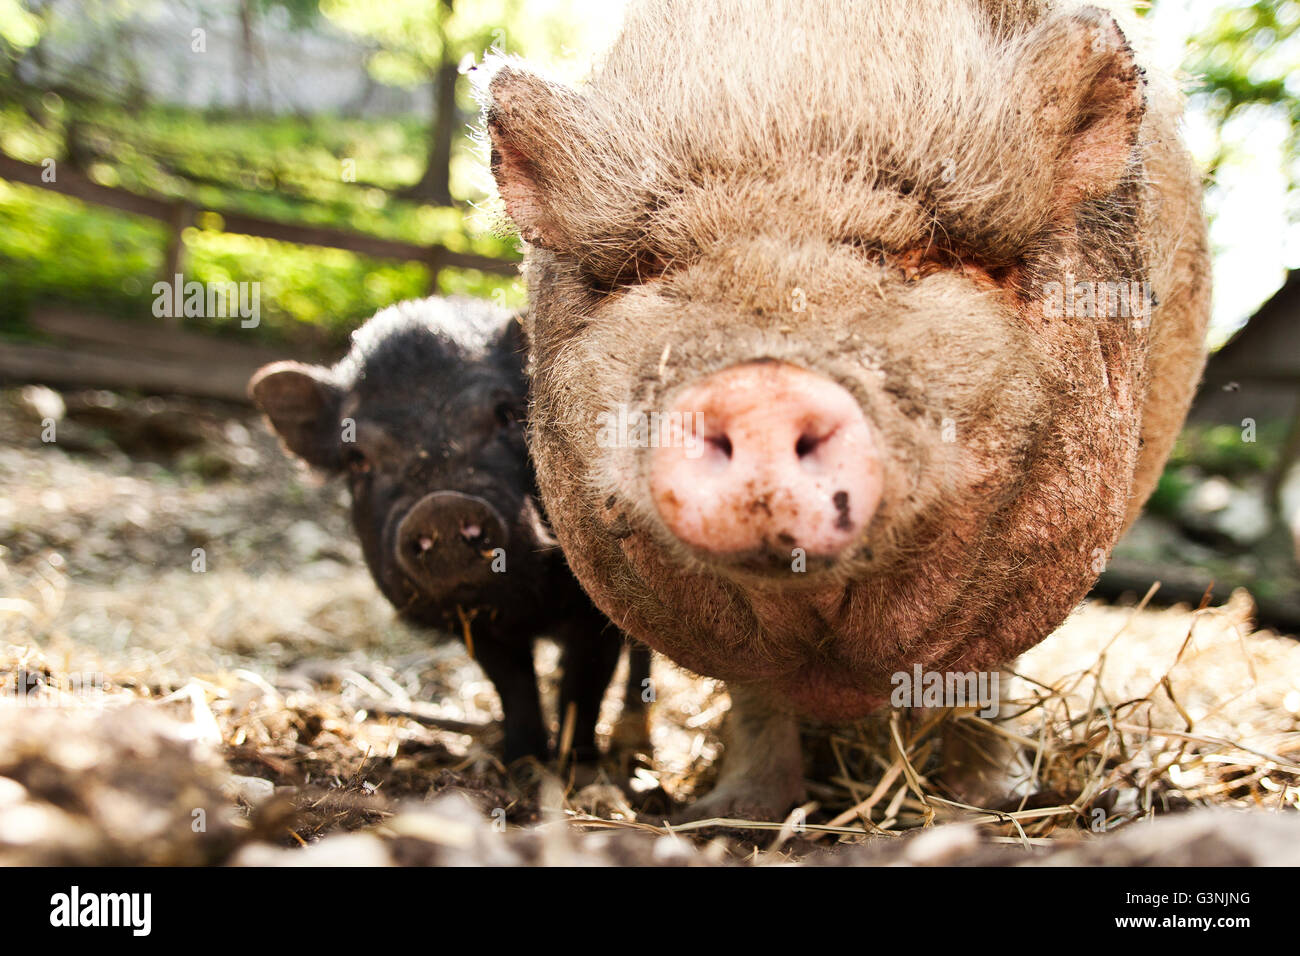 Pot-bellied pig, adult and piglet, Ernstbrunn zoo, Lower Austria, Austria, Europe - Stock Image